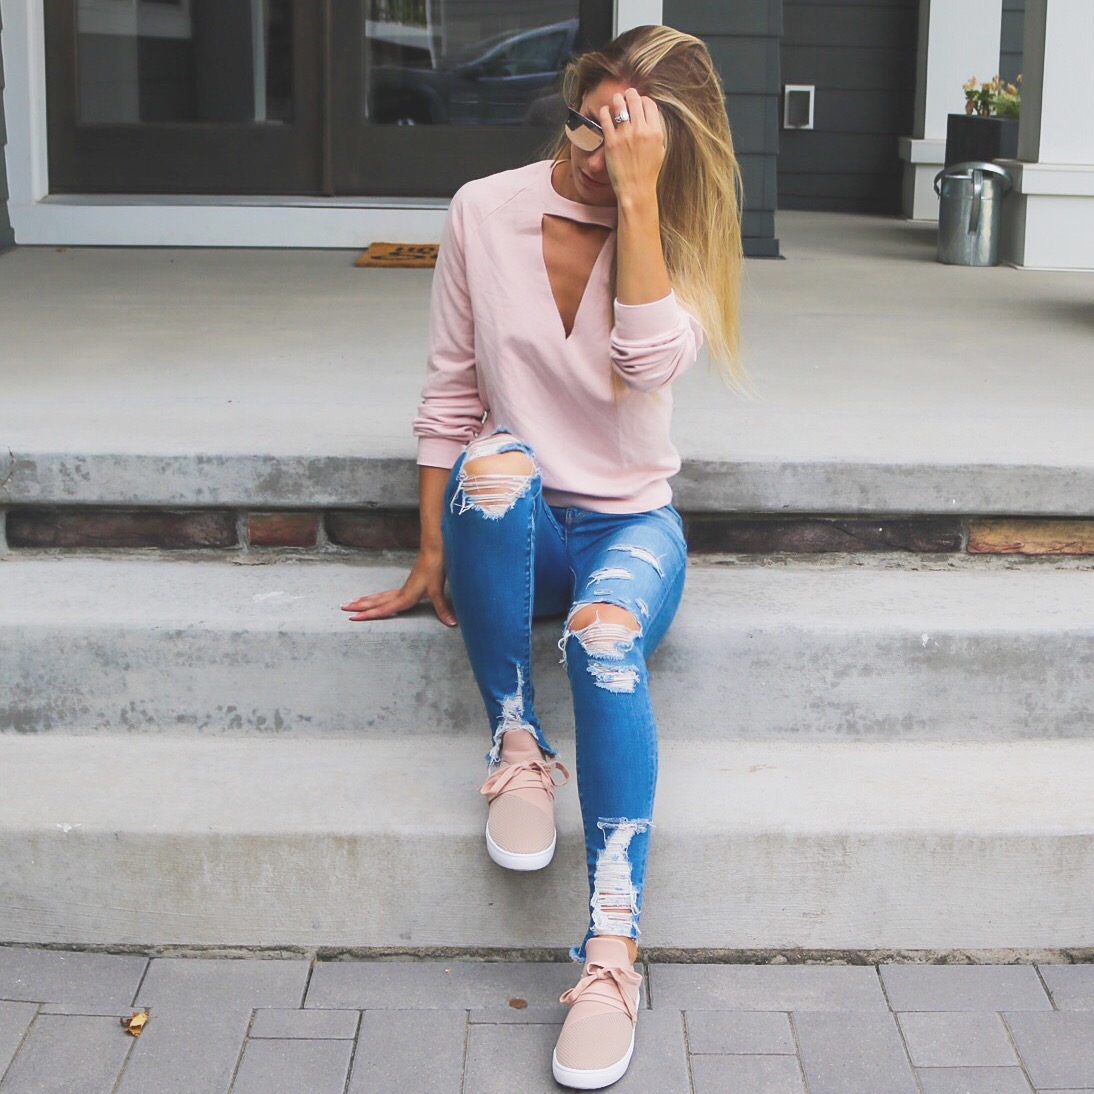 6d422c8be78 CRUSHING ON BLUSH — Keegan Michelle